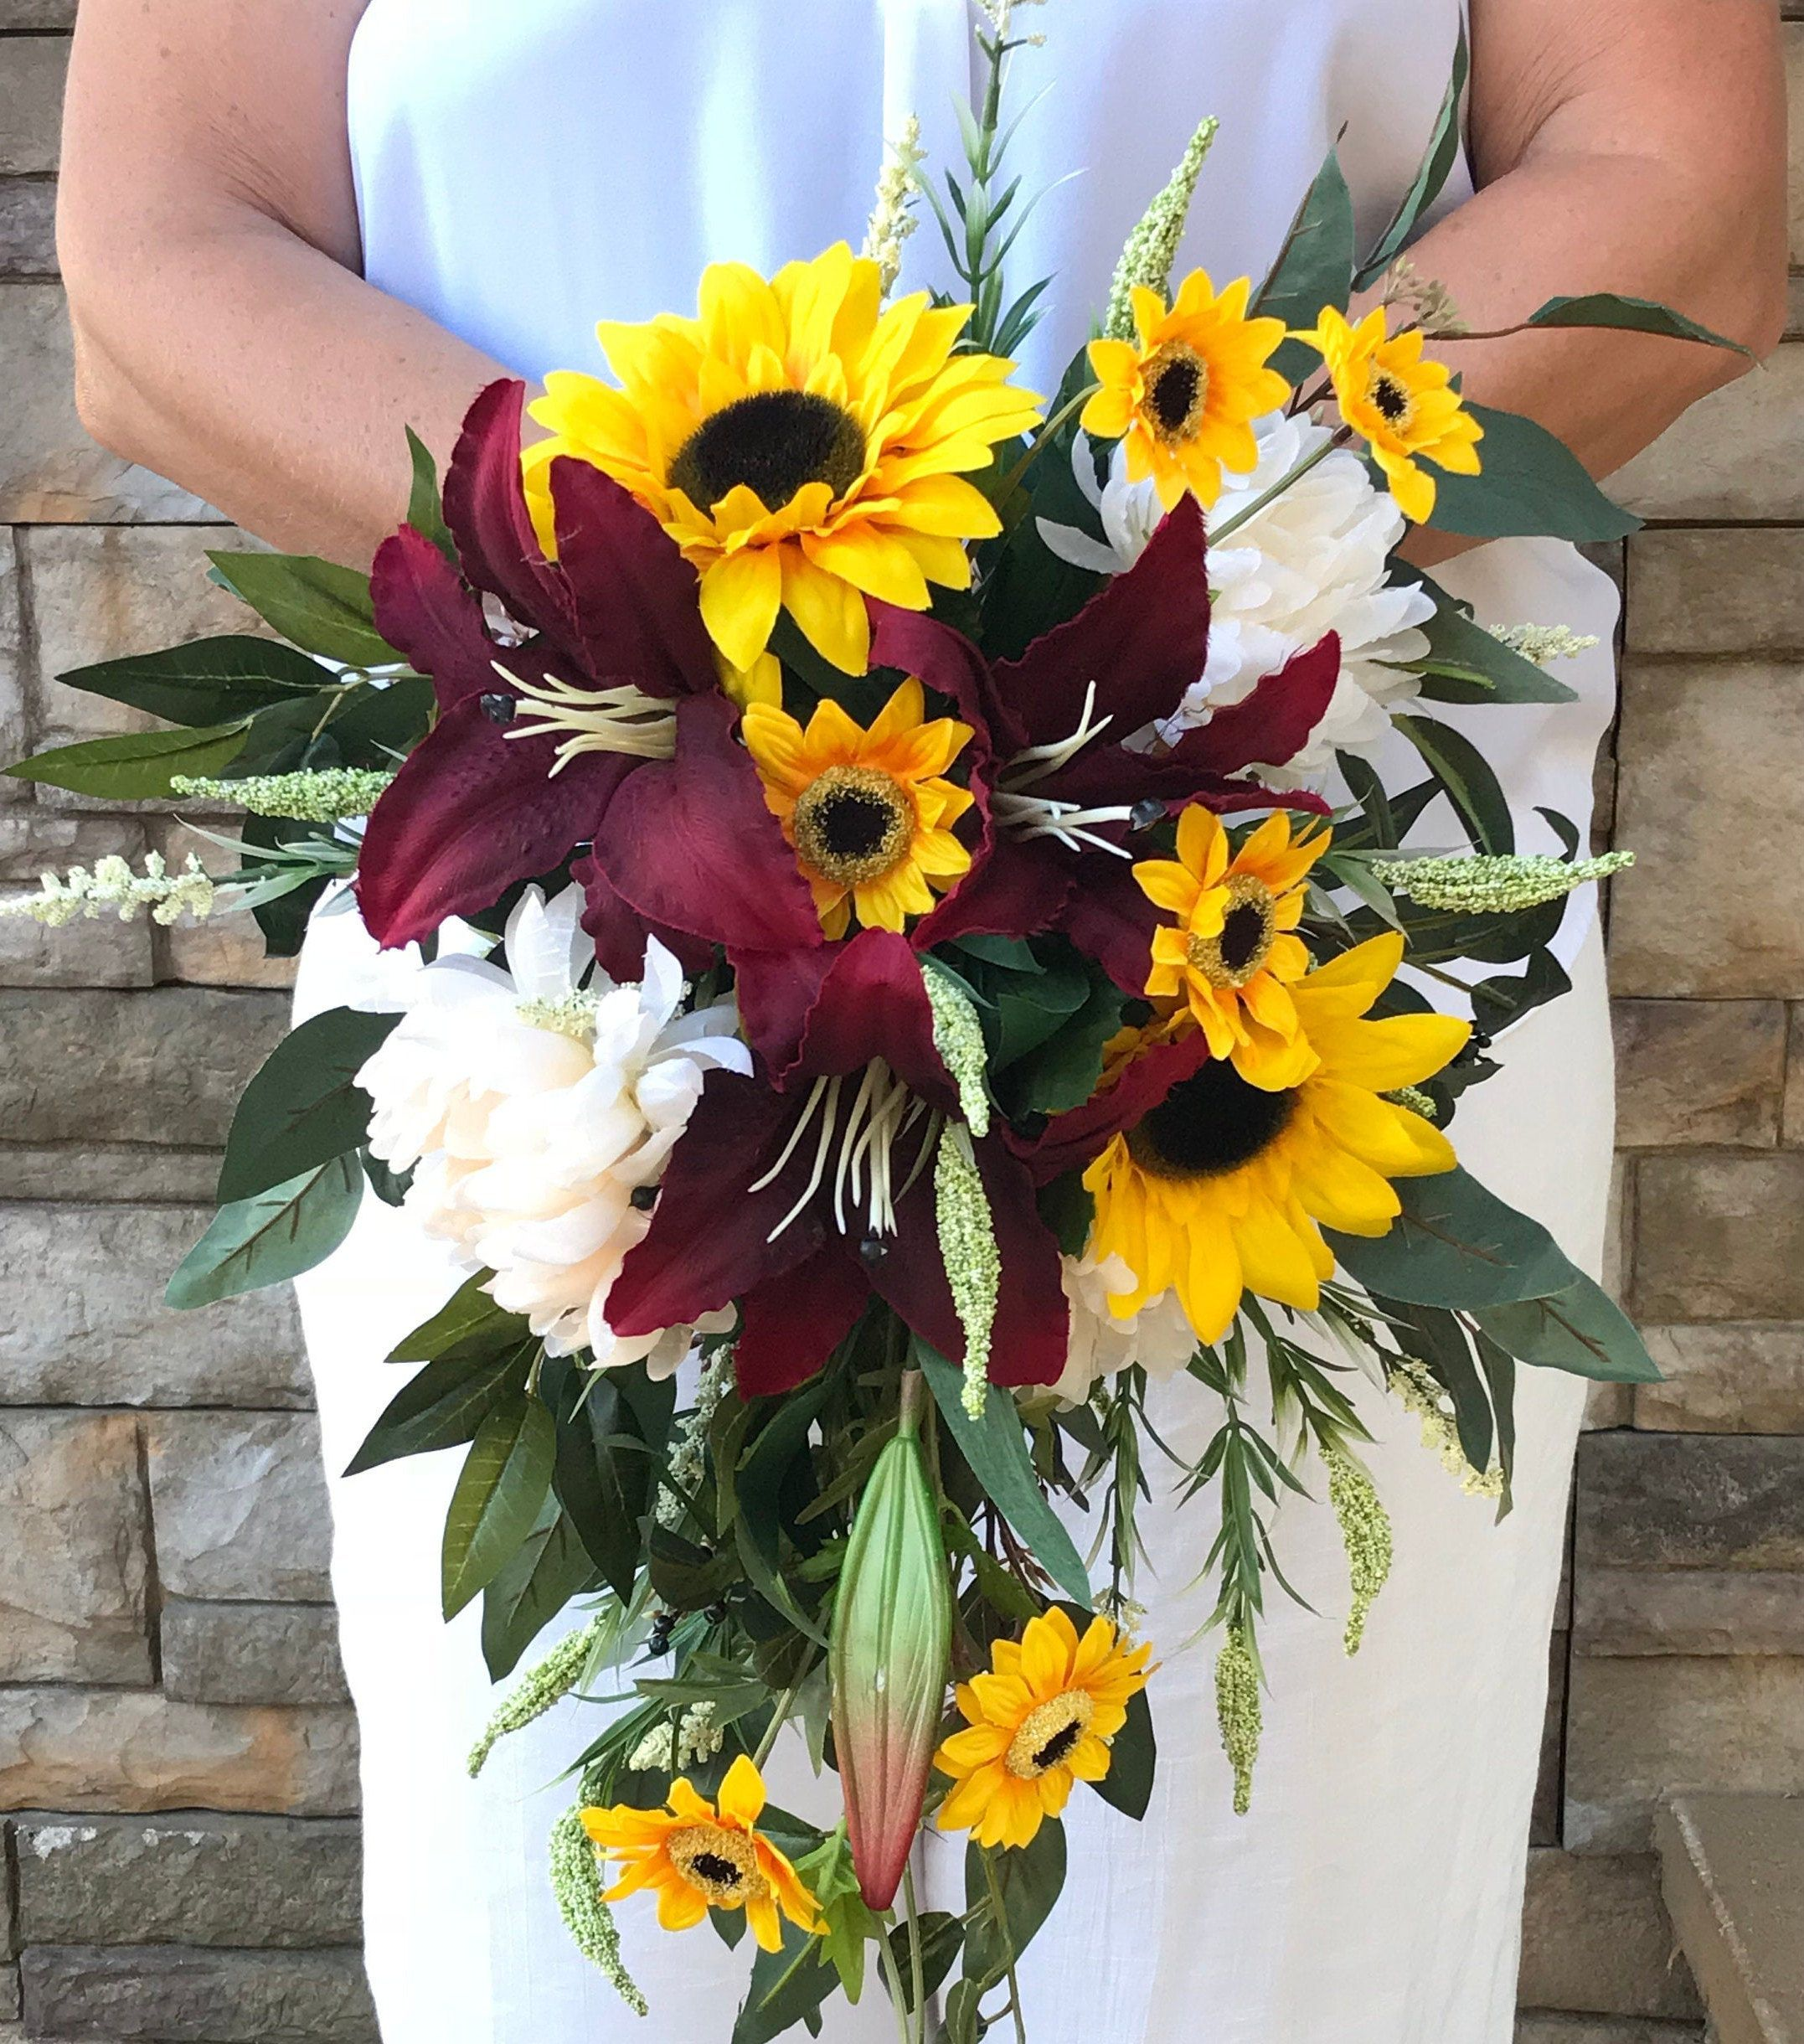 Cascading Crimson Lily Sunflower Bridal Bouquet-Cascading Burgundy Sunflower Silk Bridal Bouquet-Sunflower-Lilies-Chrysanthemums-Eucalyptus